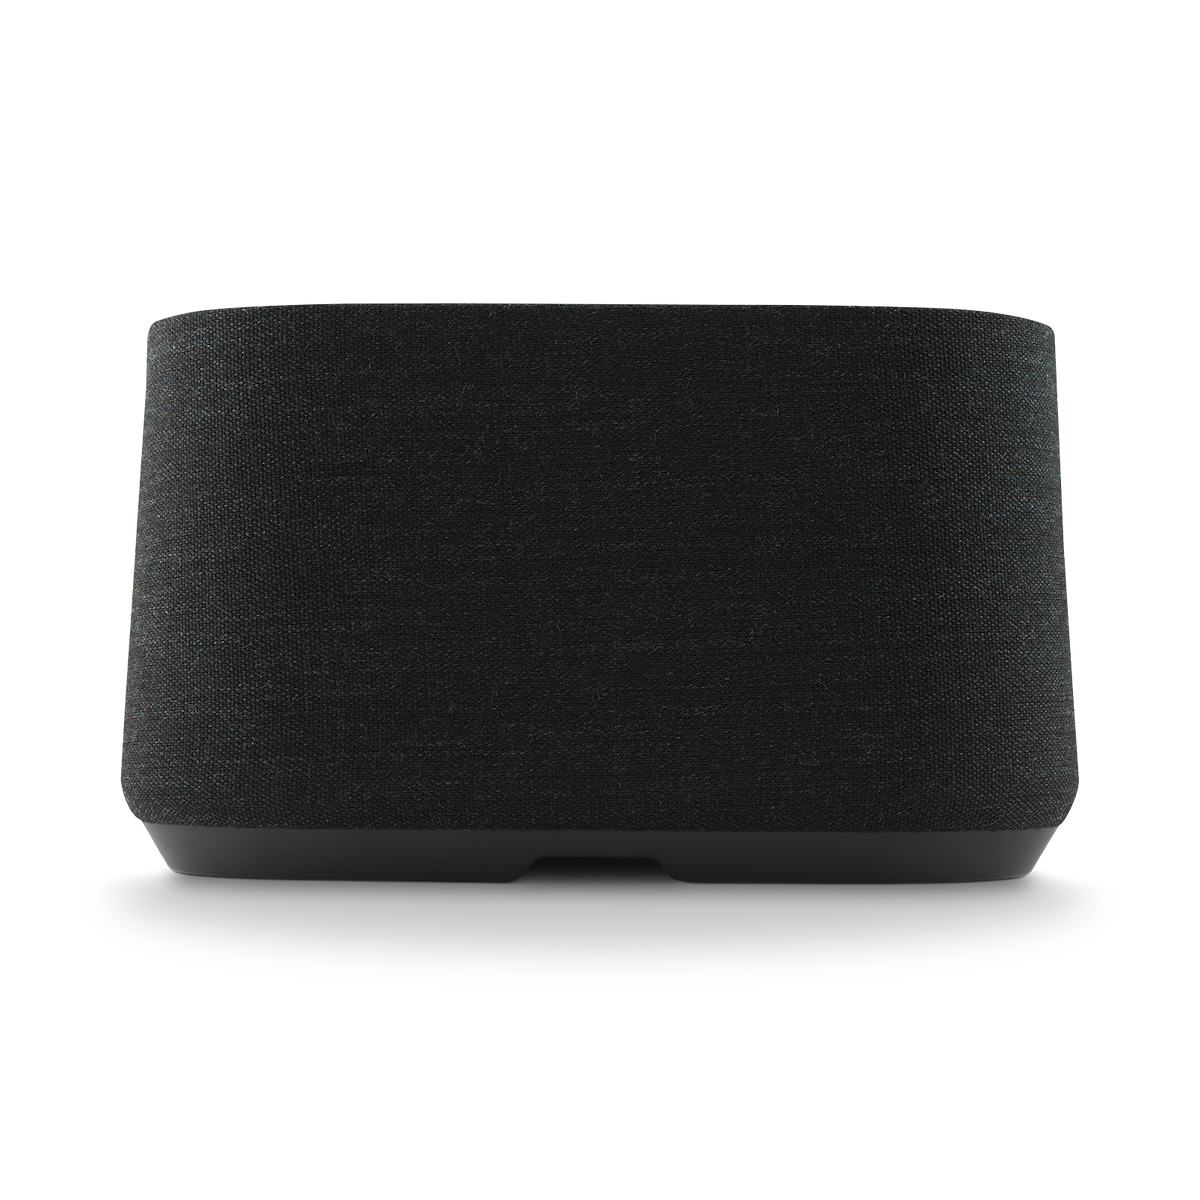 Harman Kardon Citation 300 - Wireless Speaker - AVStore.in